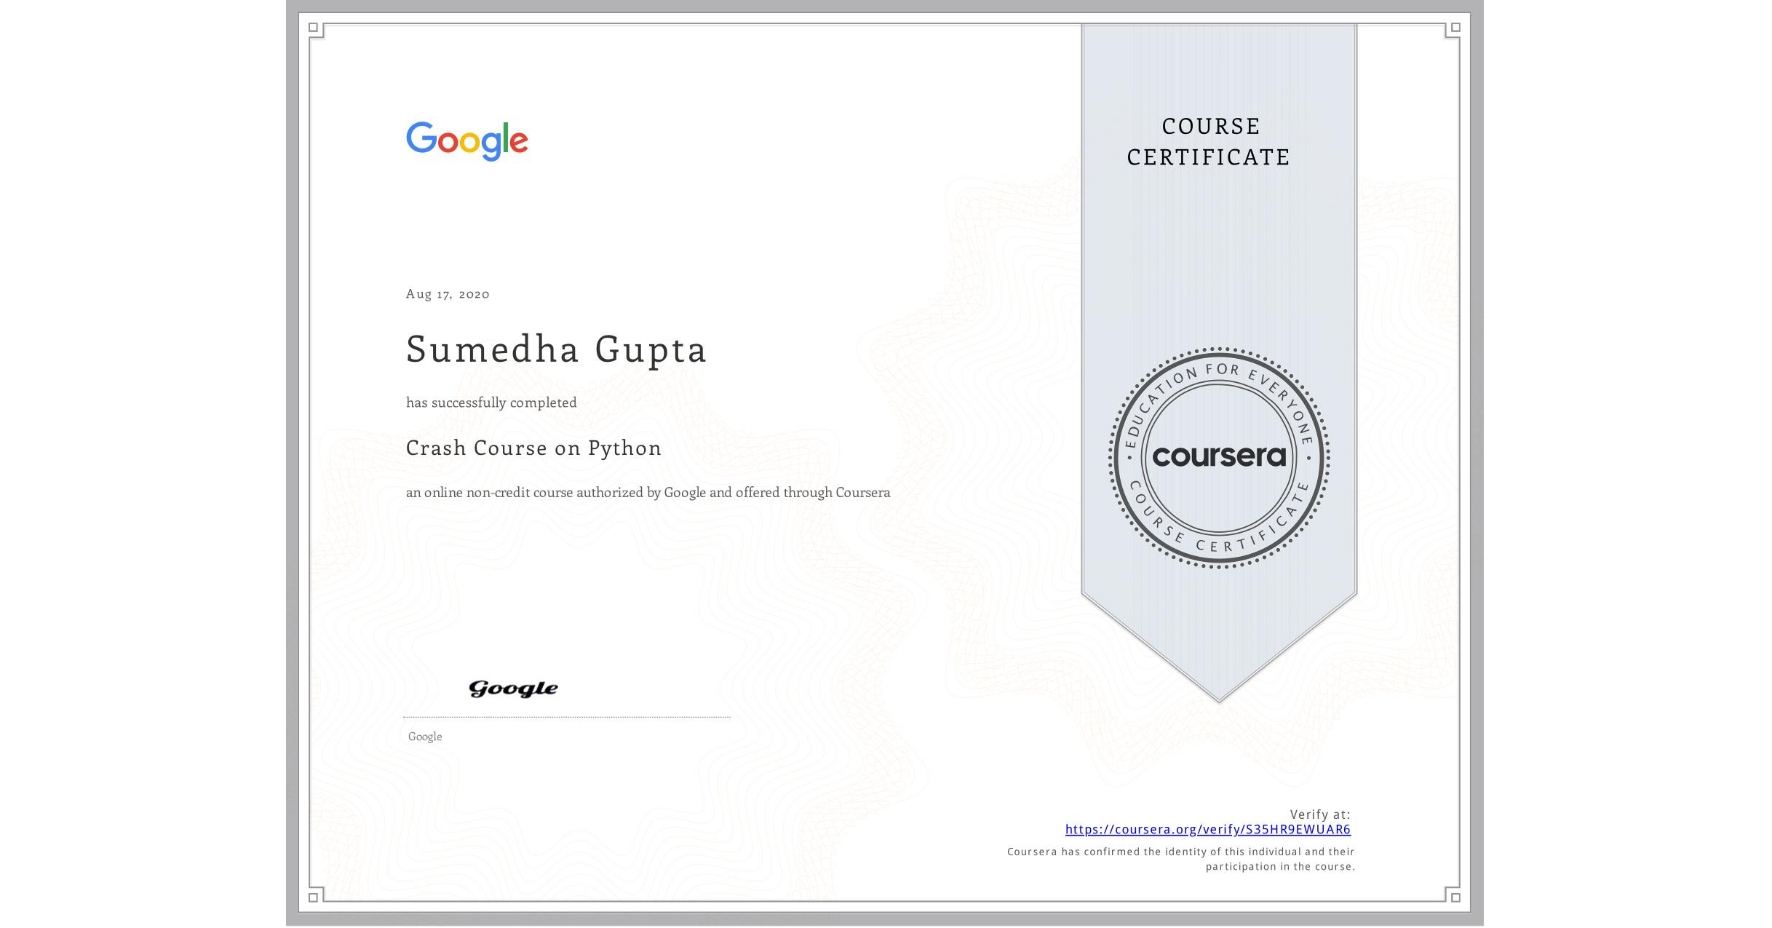 View certificate for Sumedha Gupta, Crash Course on Python, an online non-credit course authorized by Google and offered through Coursera